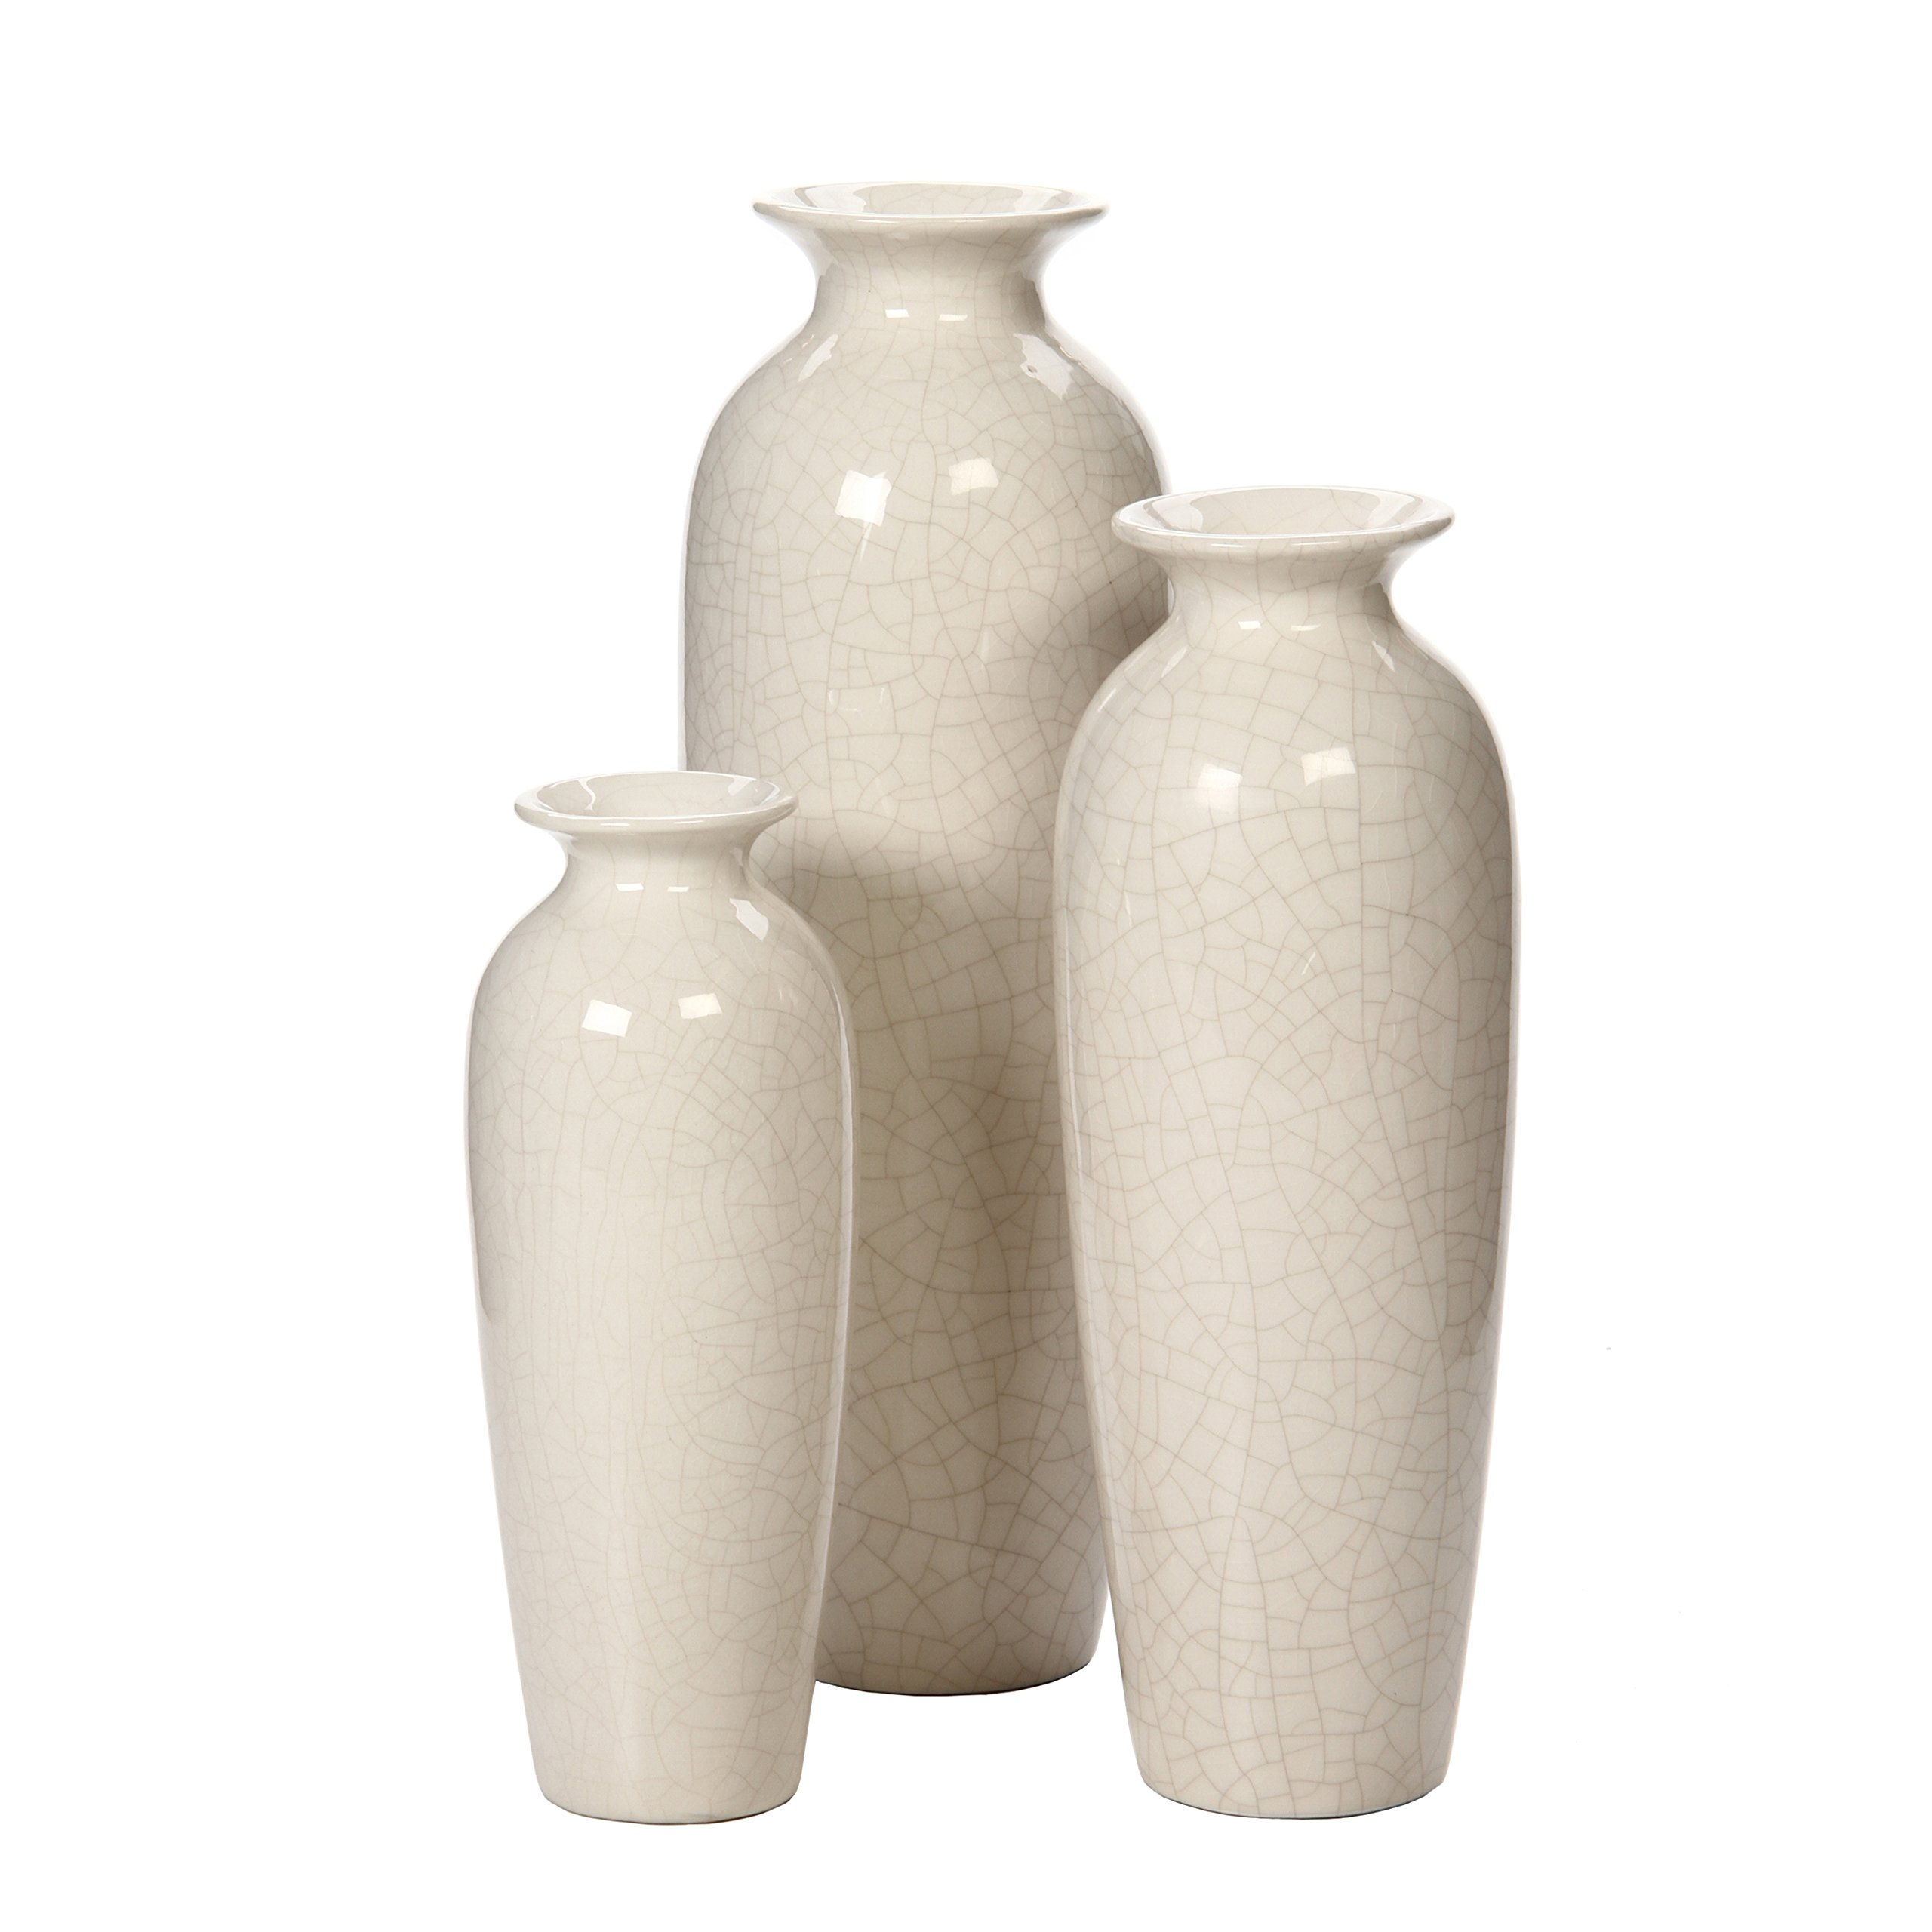 Hosley Set of 3 Crackle Ivory Ceramic Vases in Gift Box. Ideal Gift for Wedding or Special Occasions; for Use in Home Office, Decor, Floor Vases, Spa, Aromatherapy Settings O3 by Hosley